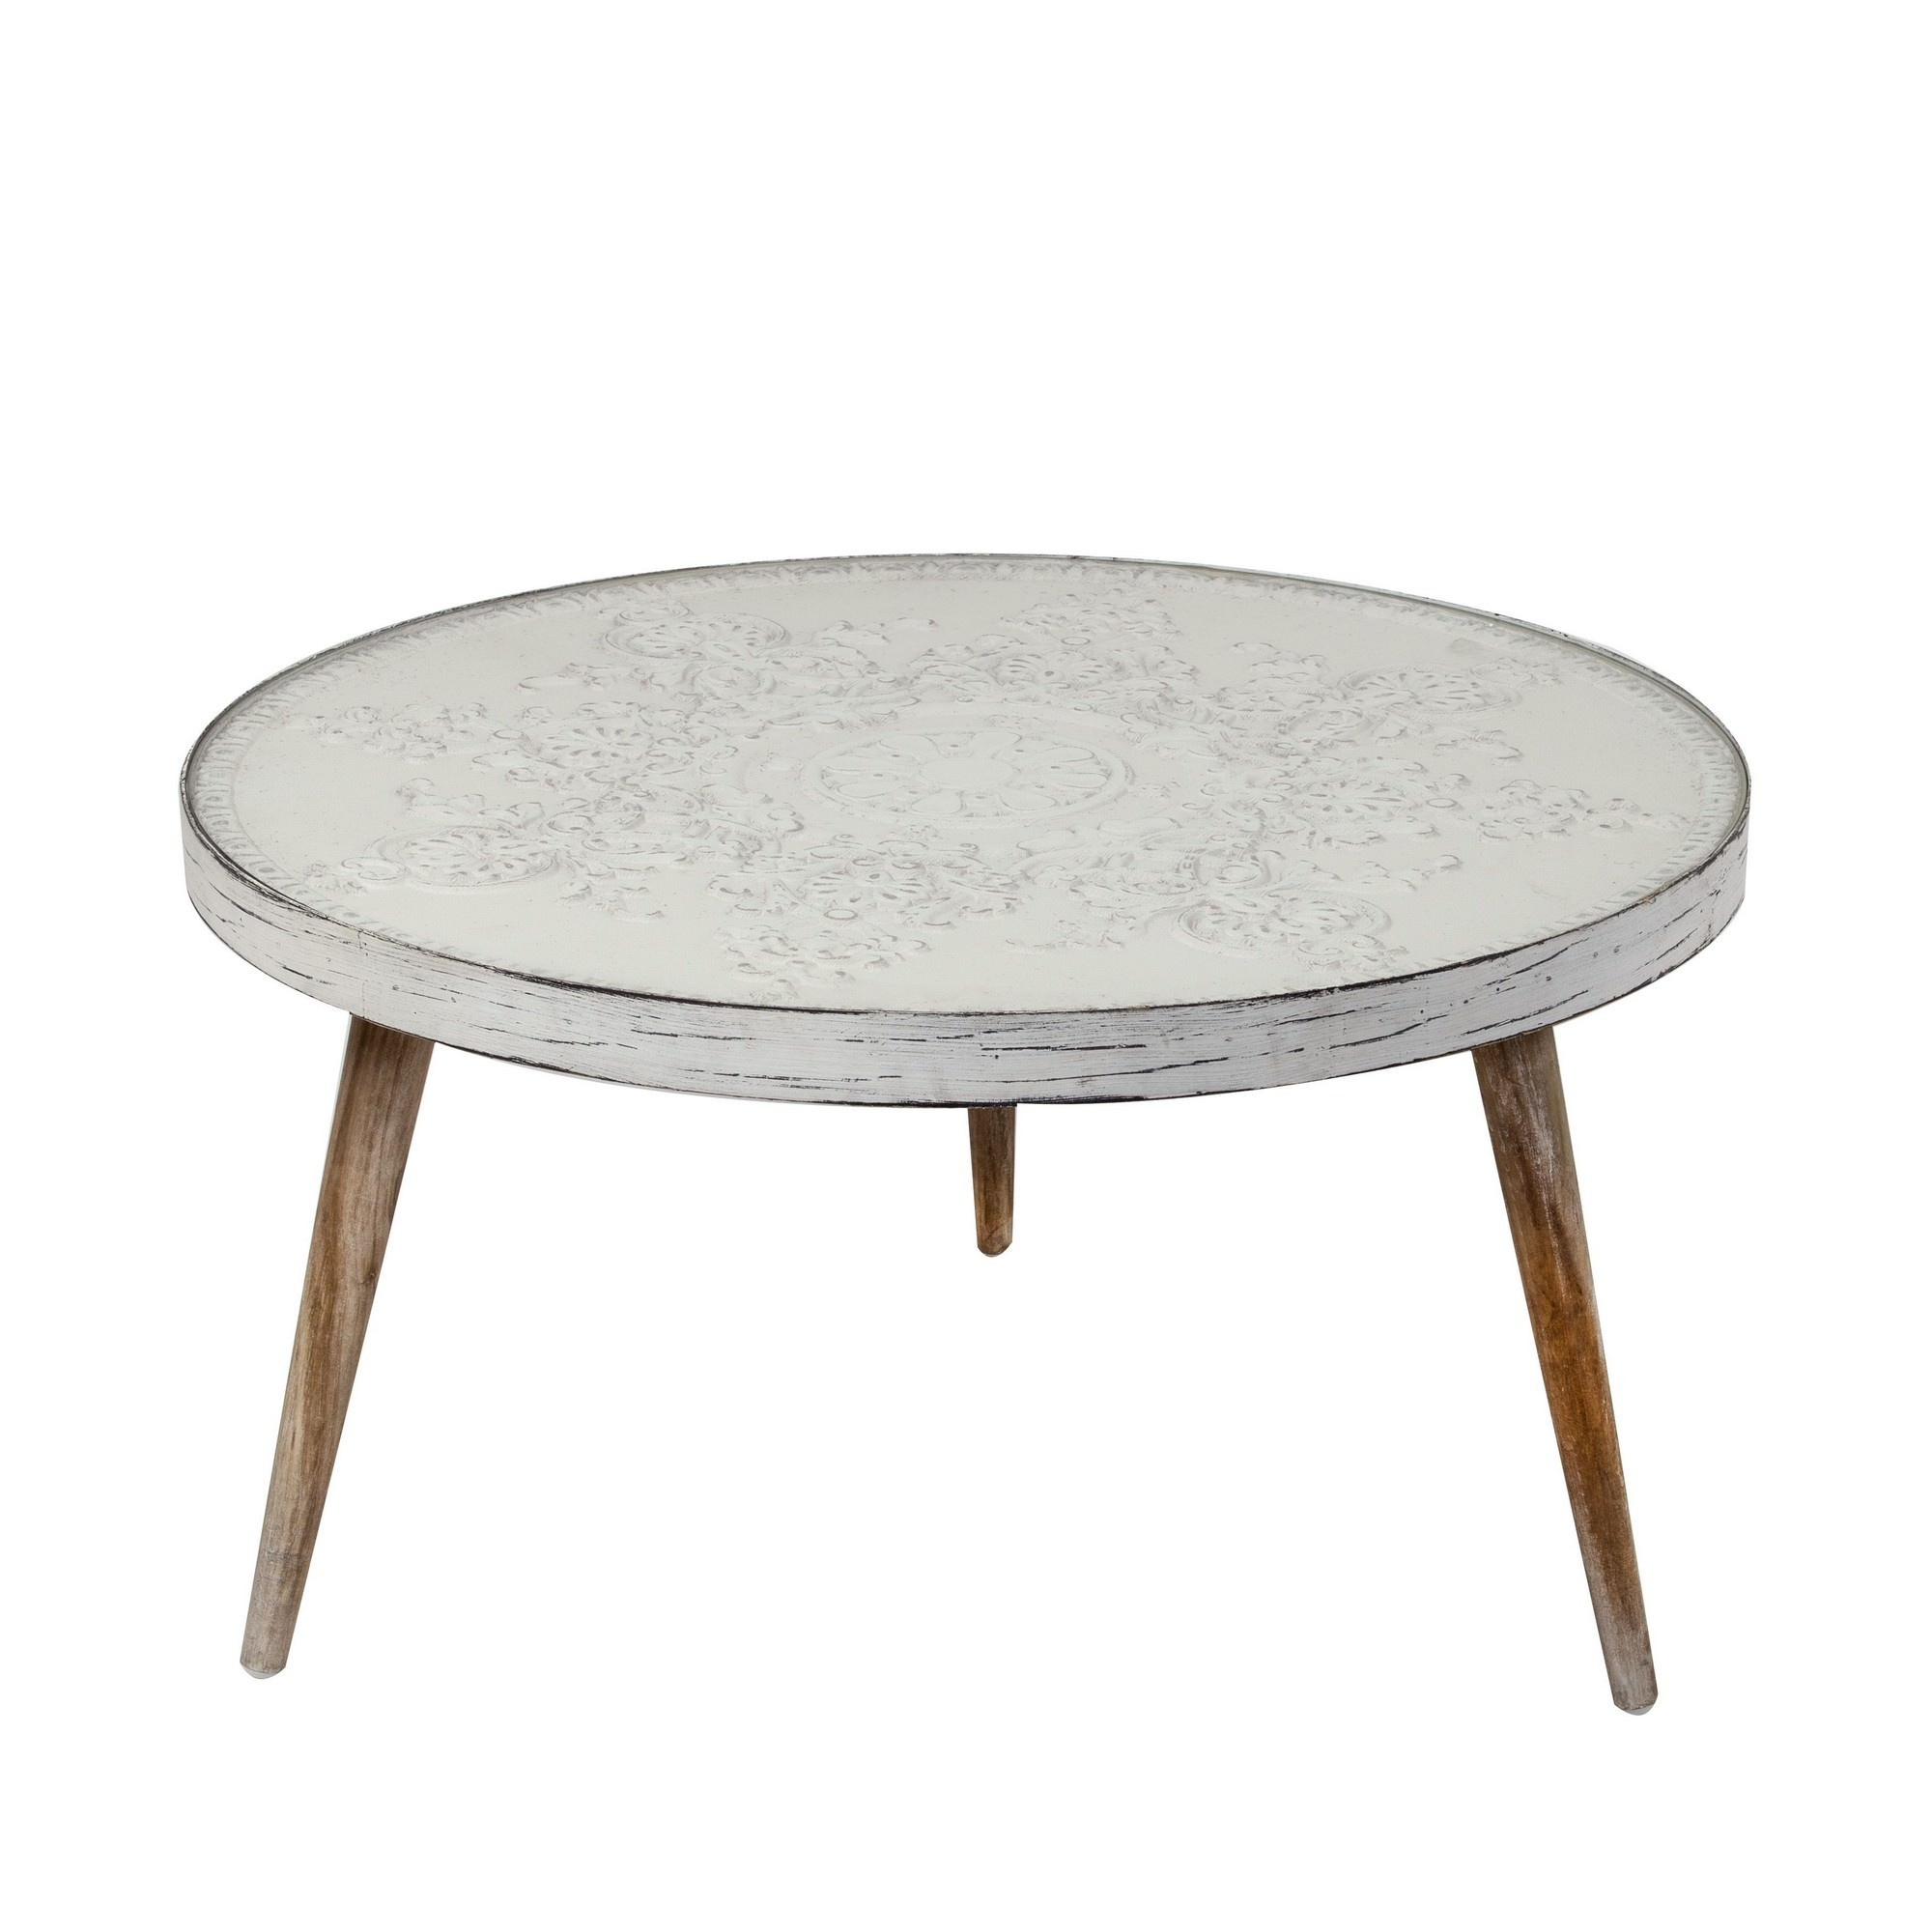 Victor Handmade Wooden Round Coffee Table, 80cm